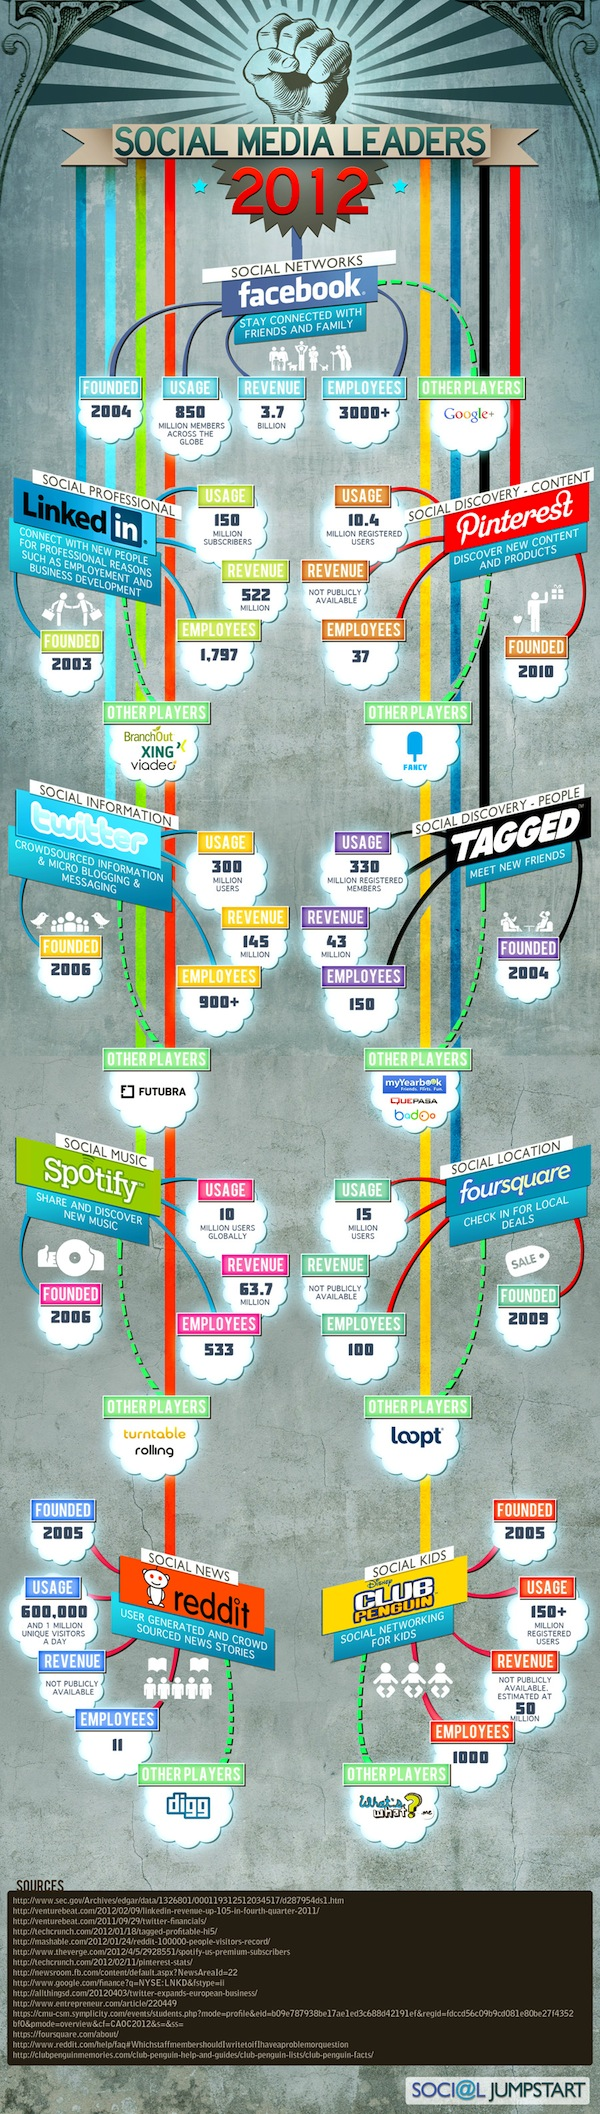 Social-Media-Leaders-2012-infographic